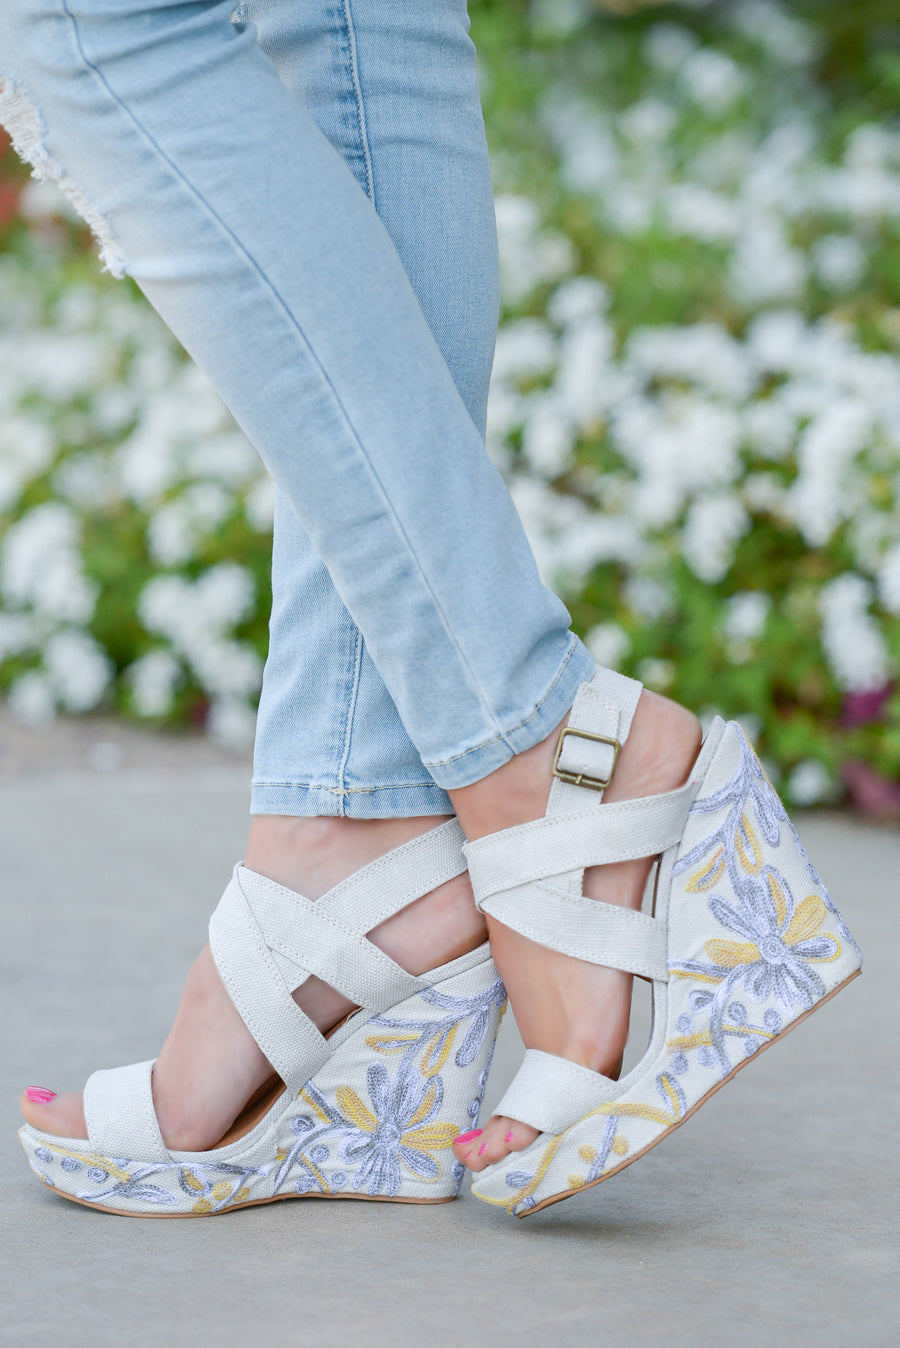 0cb0ca5483fd Cassia Floral Wedges - Ivory strappy wedges with floral heel